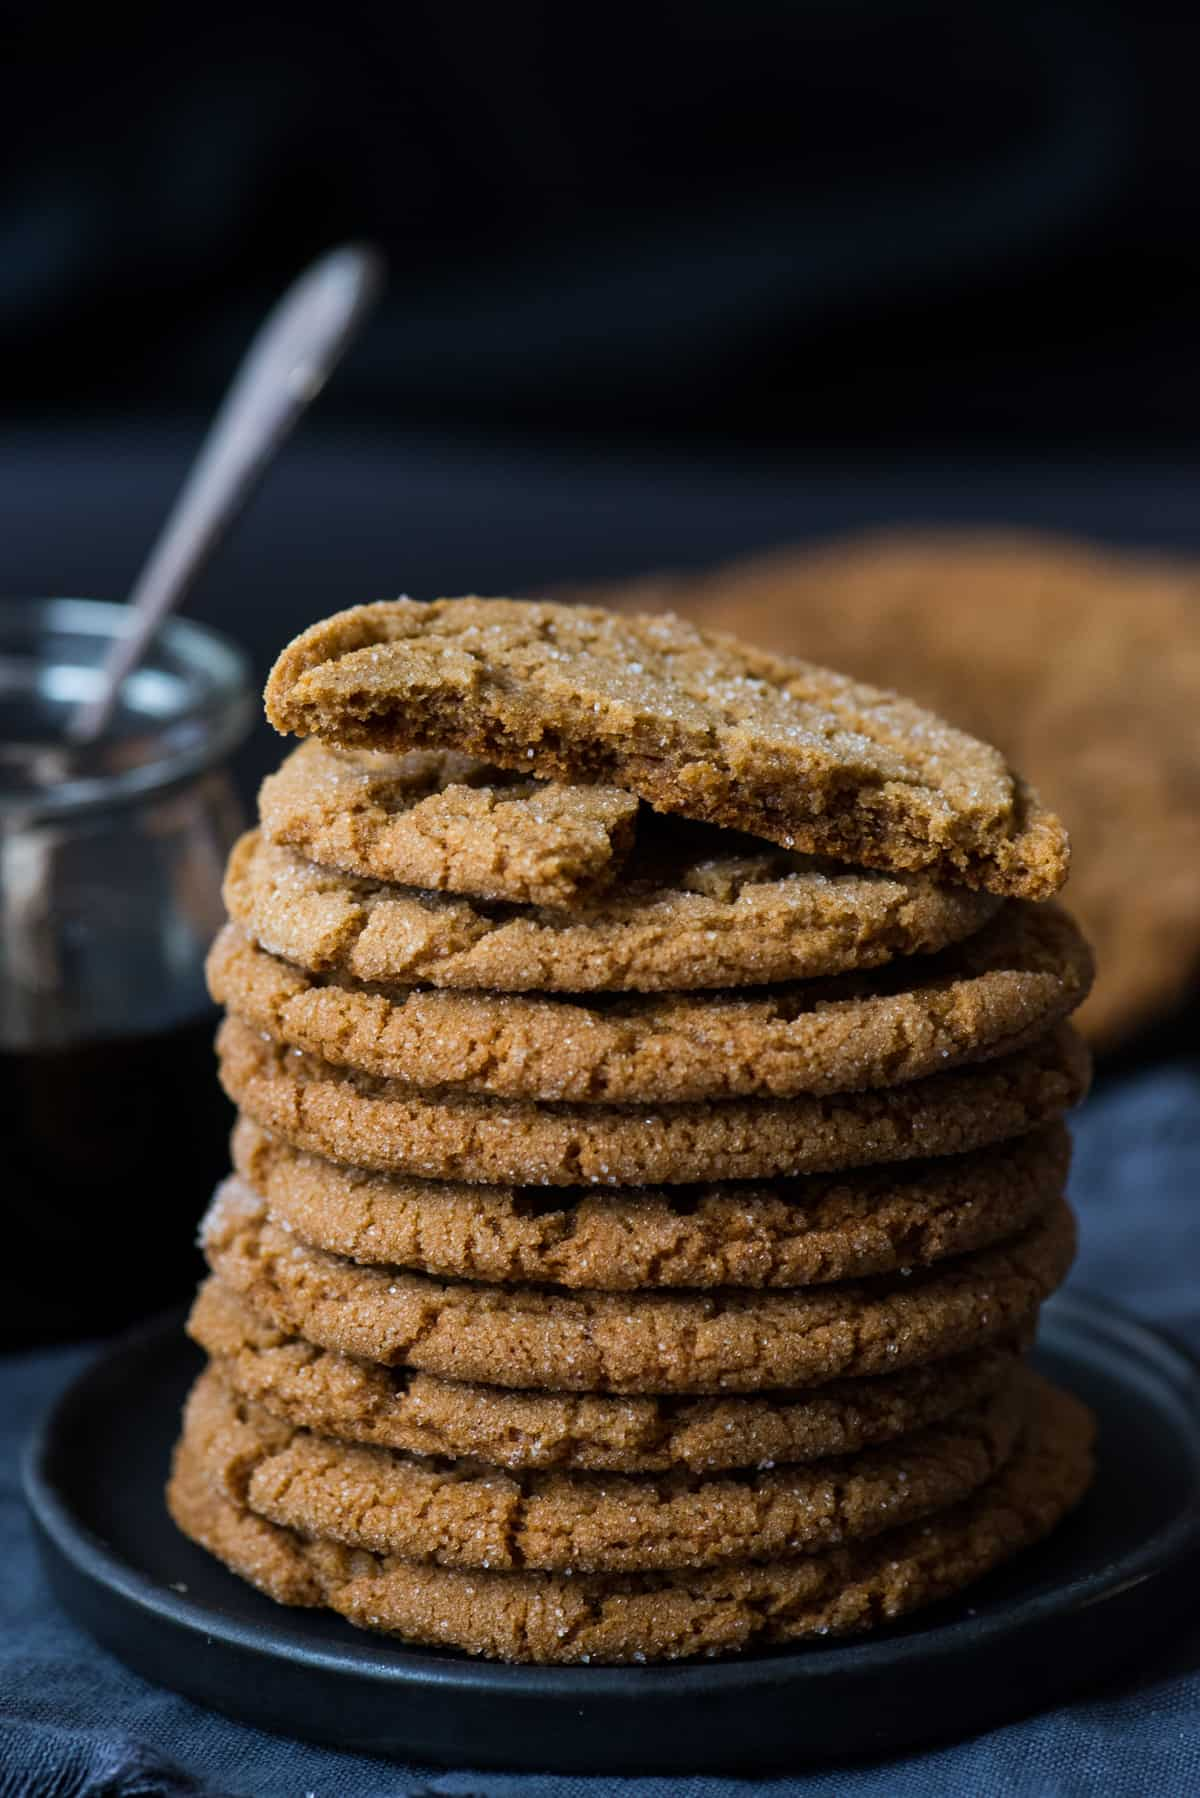 molasses cookies stacked on top of each other on dark plate on dark background with molasses in the background